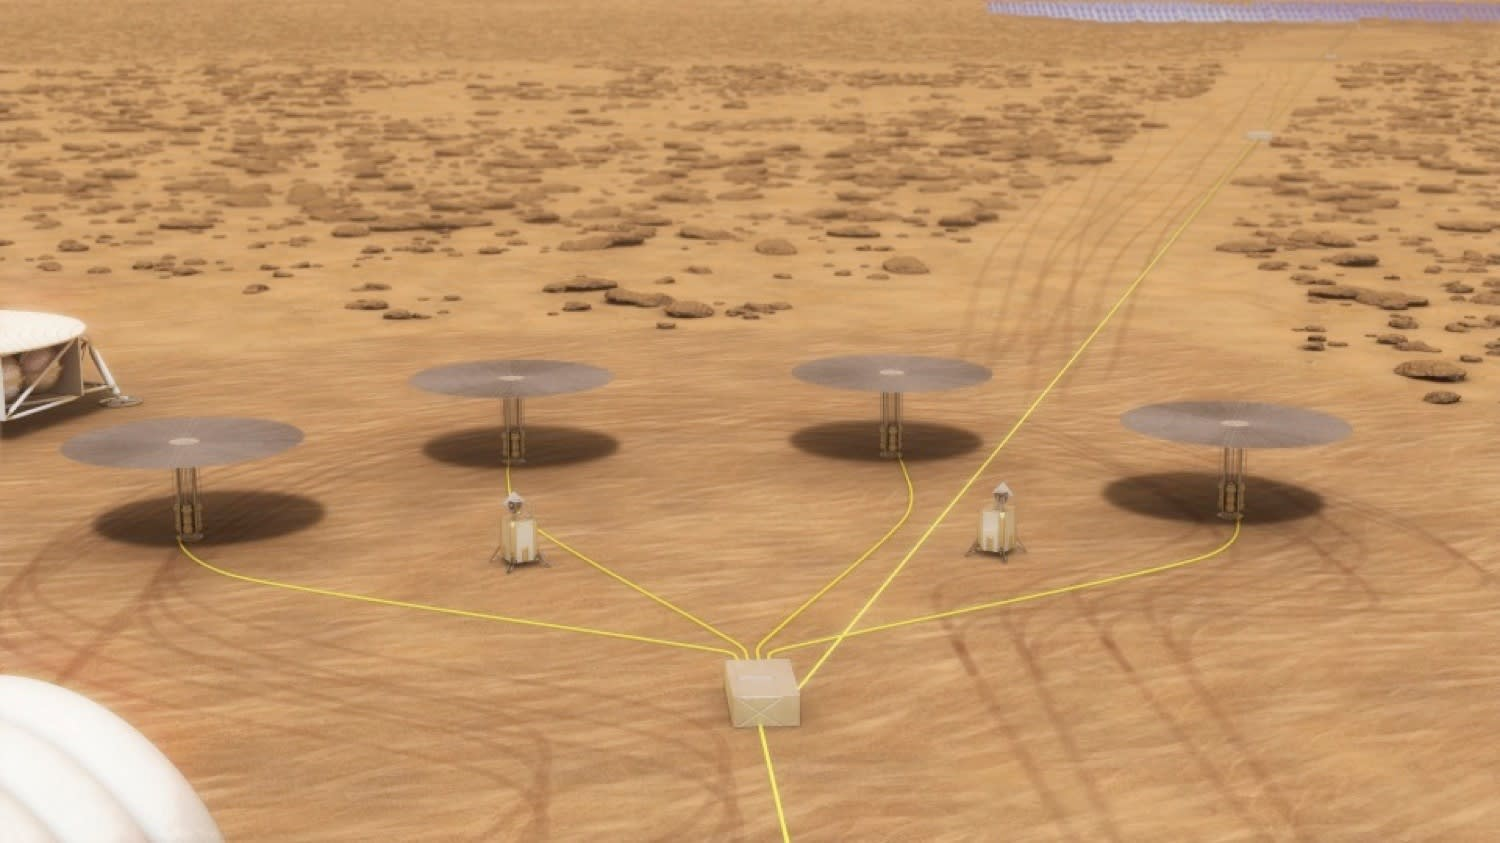 NASA completes full-power tests of small, portable nuclear